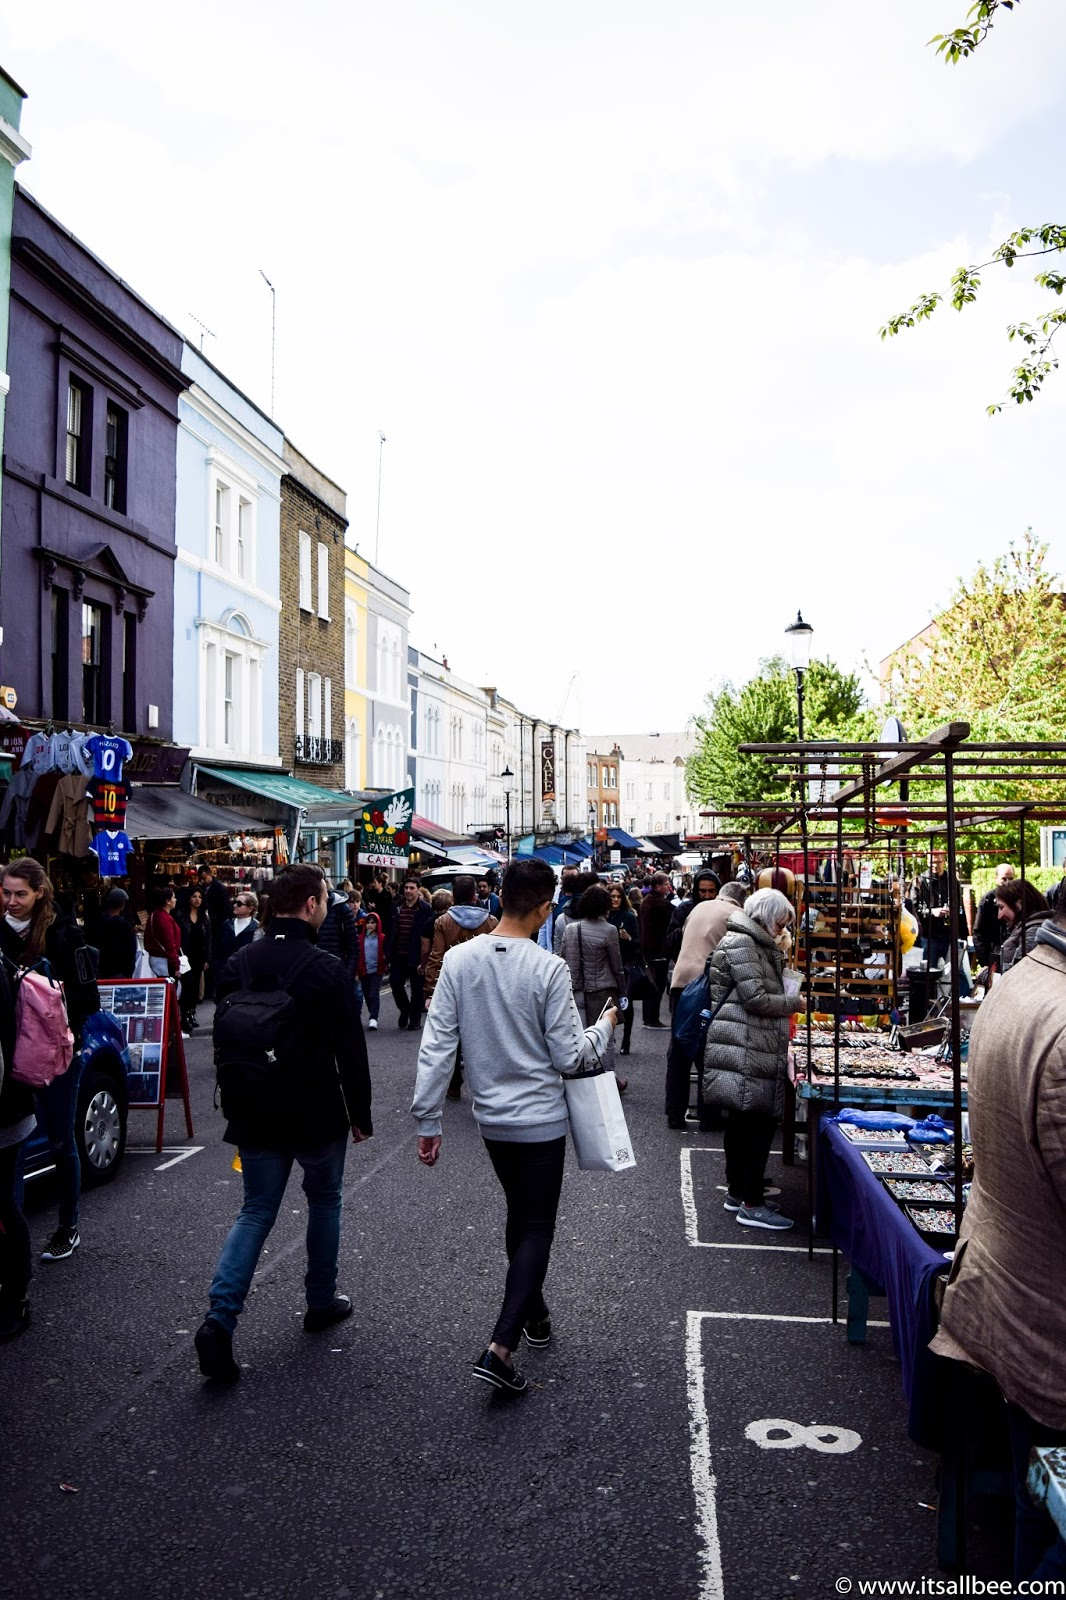 Portobello Market Gin, Shops, Restaurants, Market, Notting Hill Gate Tube, Colourful houses